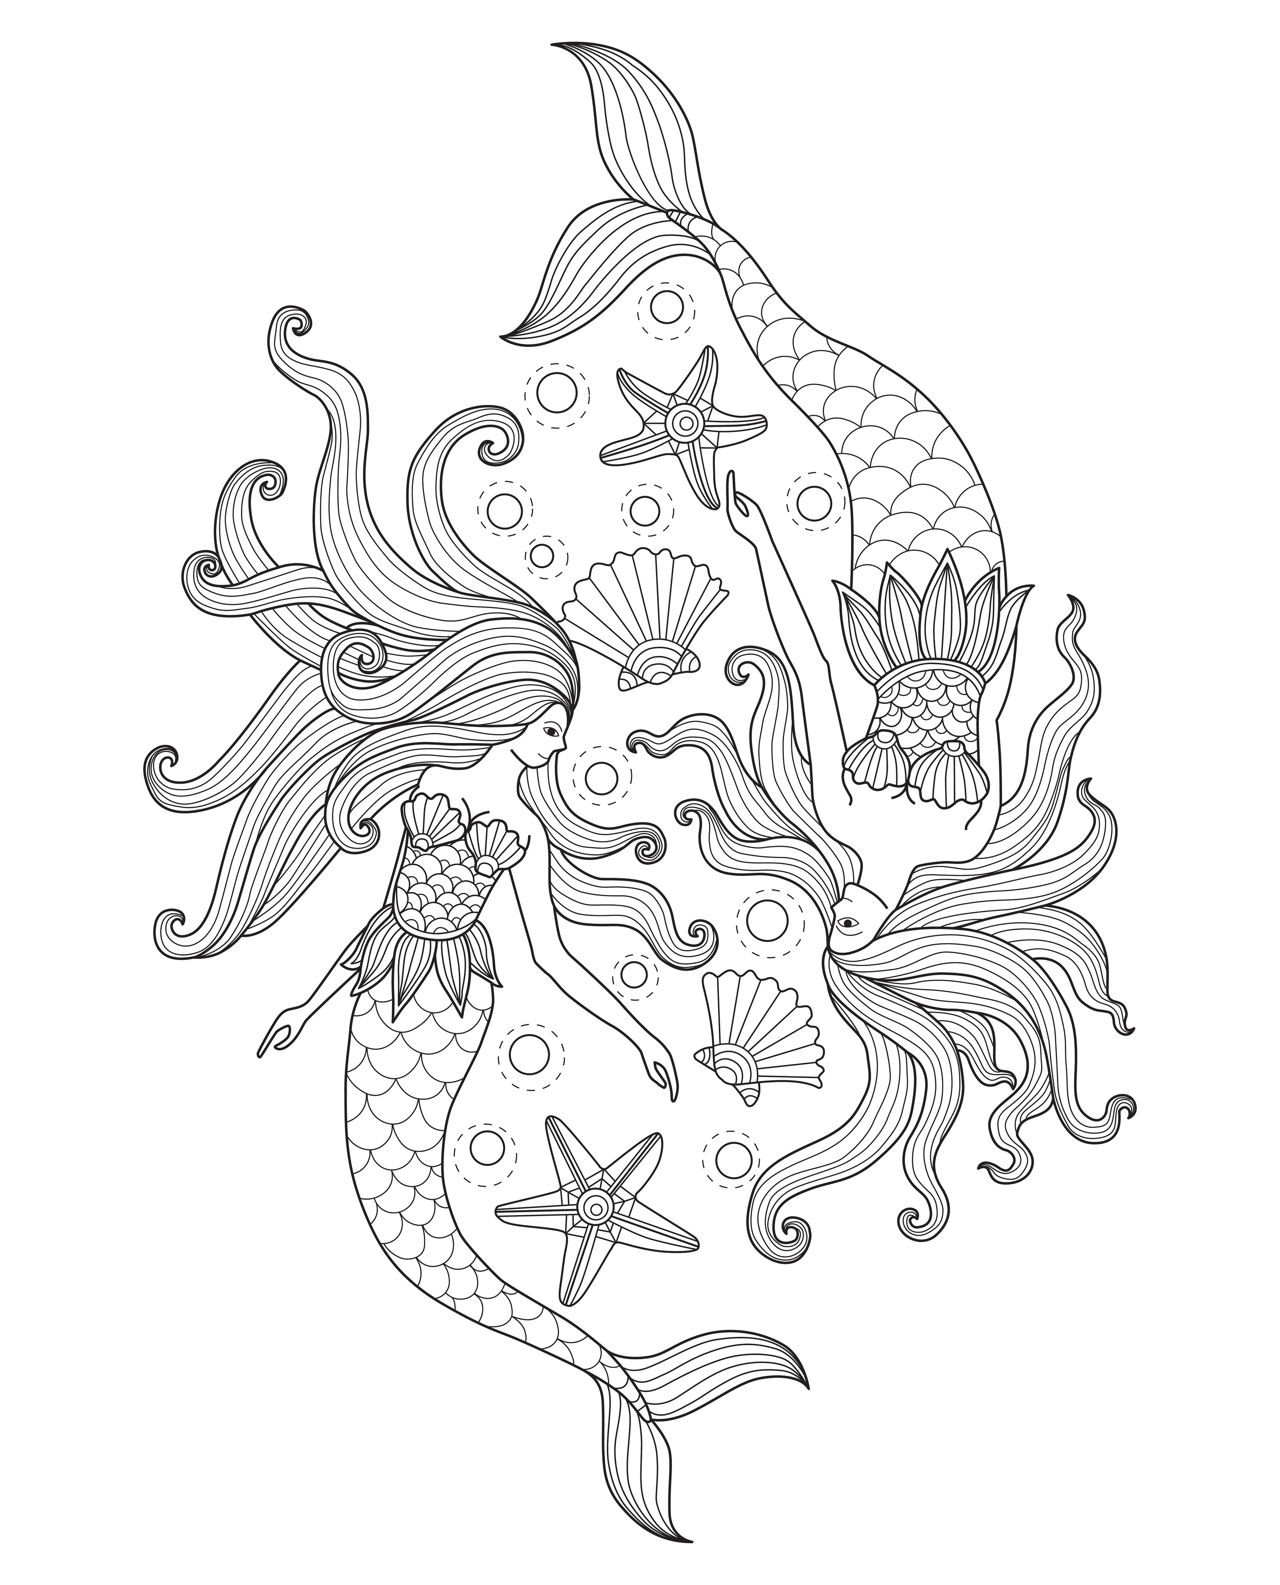 realistic printable mermaid coloring pages mermaid coloring pages 3 coloring pages to print pages coloring realistic mermaid printable